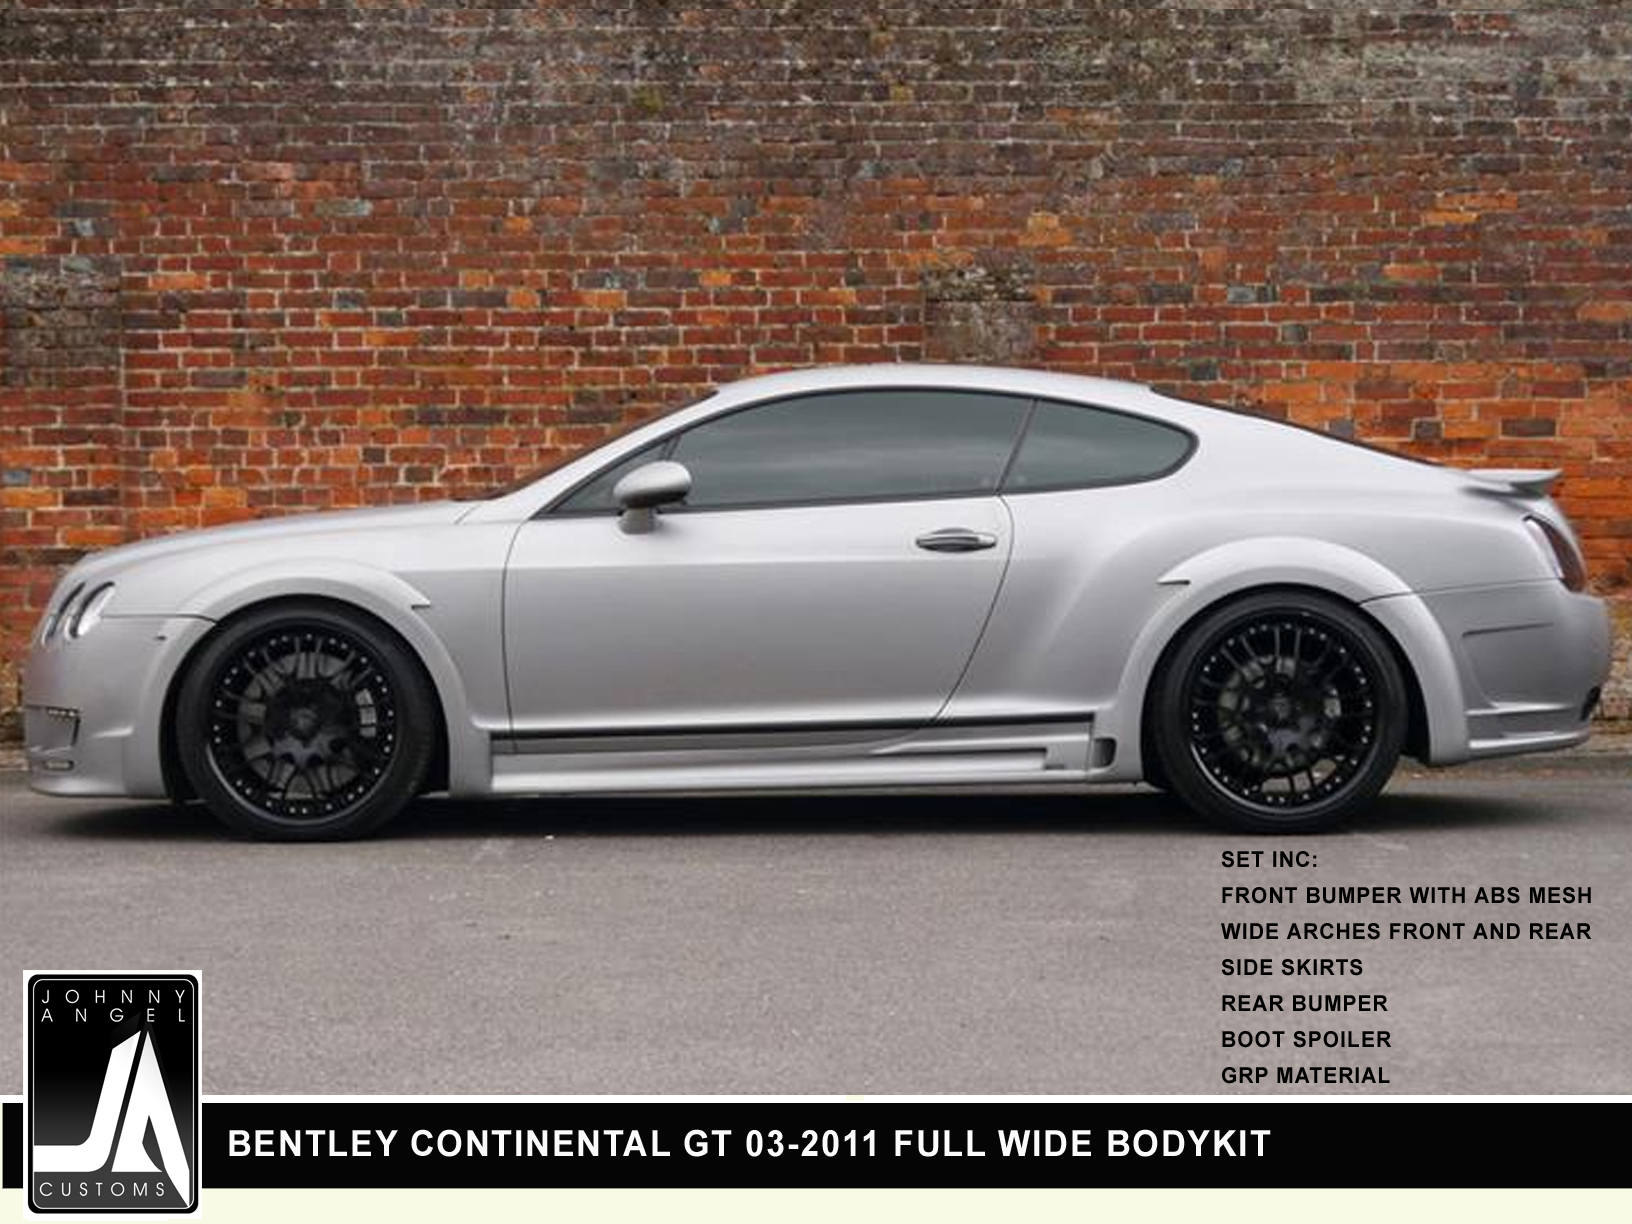 BENTLEY CONTINENTAL GT 03-2011 FULL WIDE BODYKIT  By Johnny Angel Customs pic 2